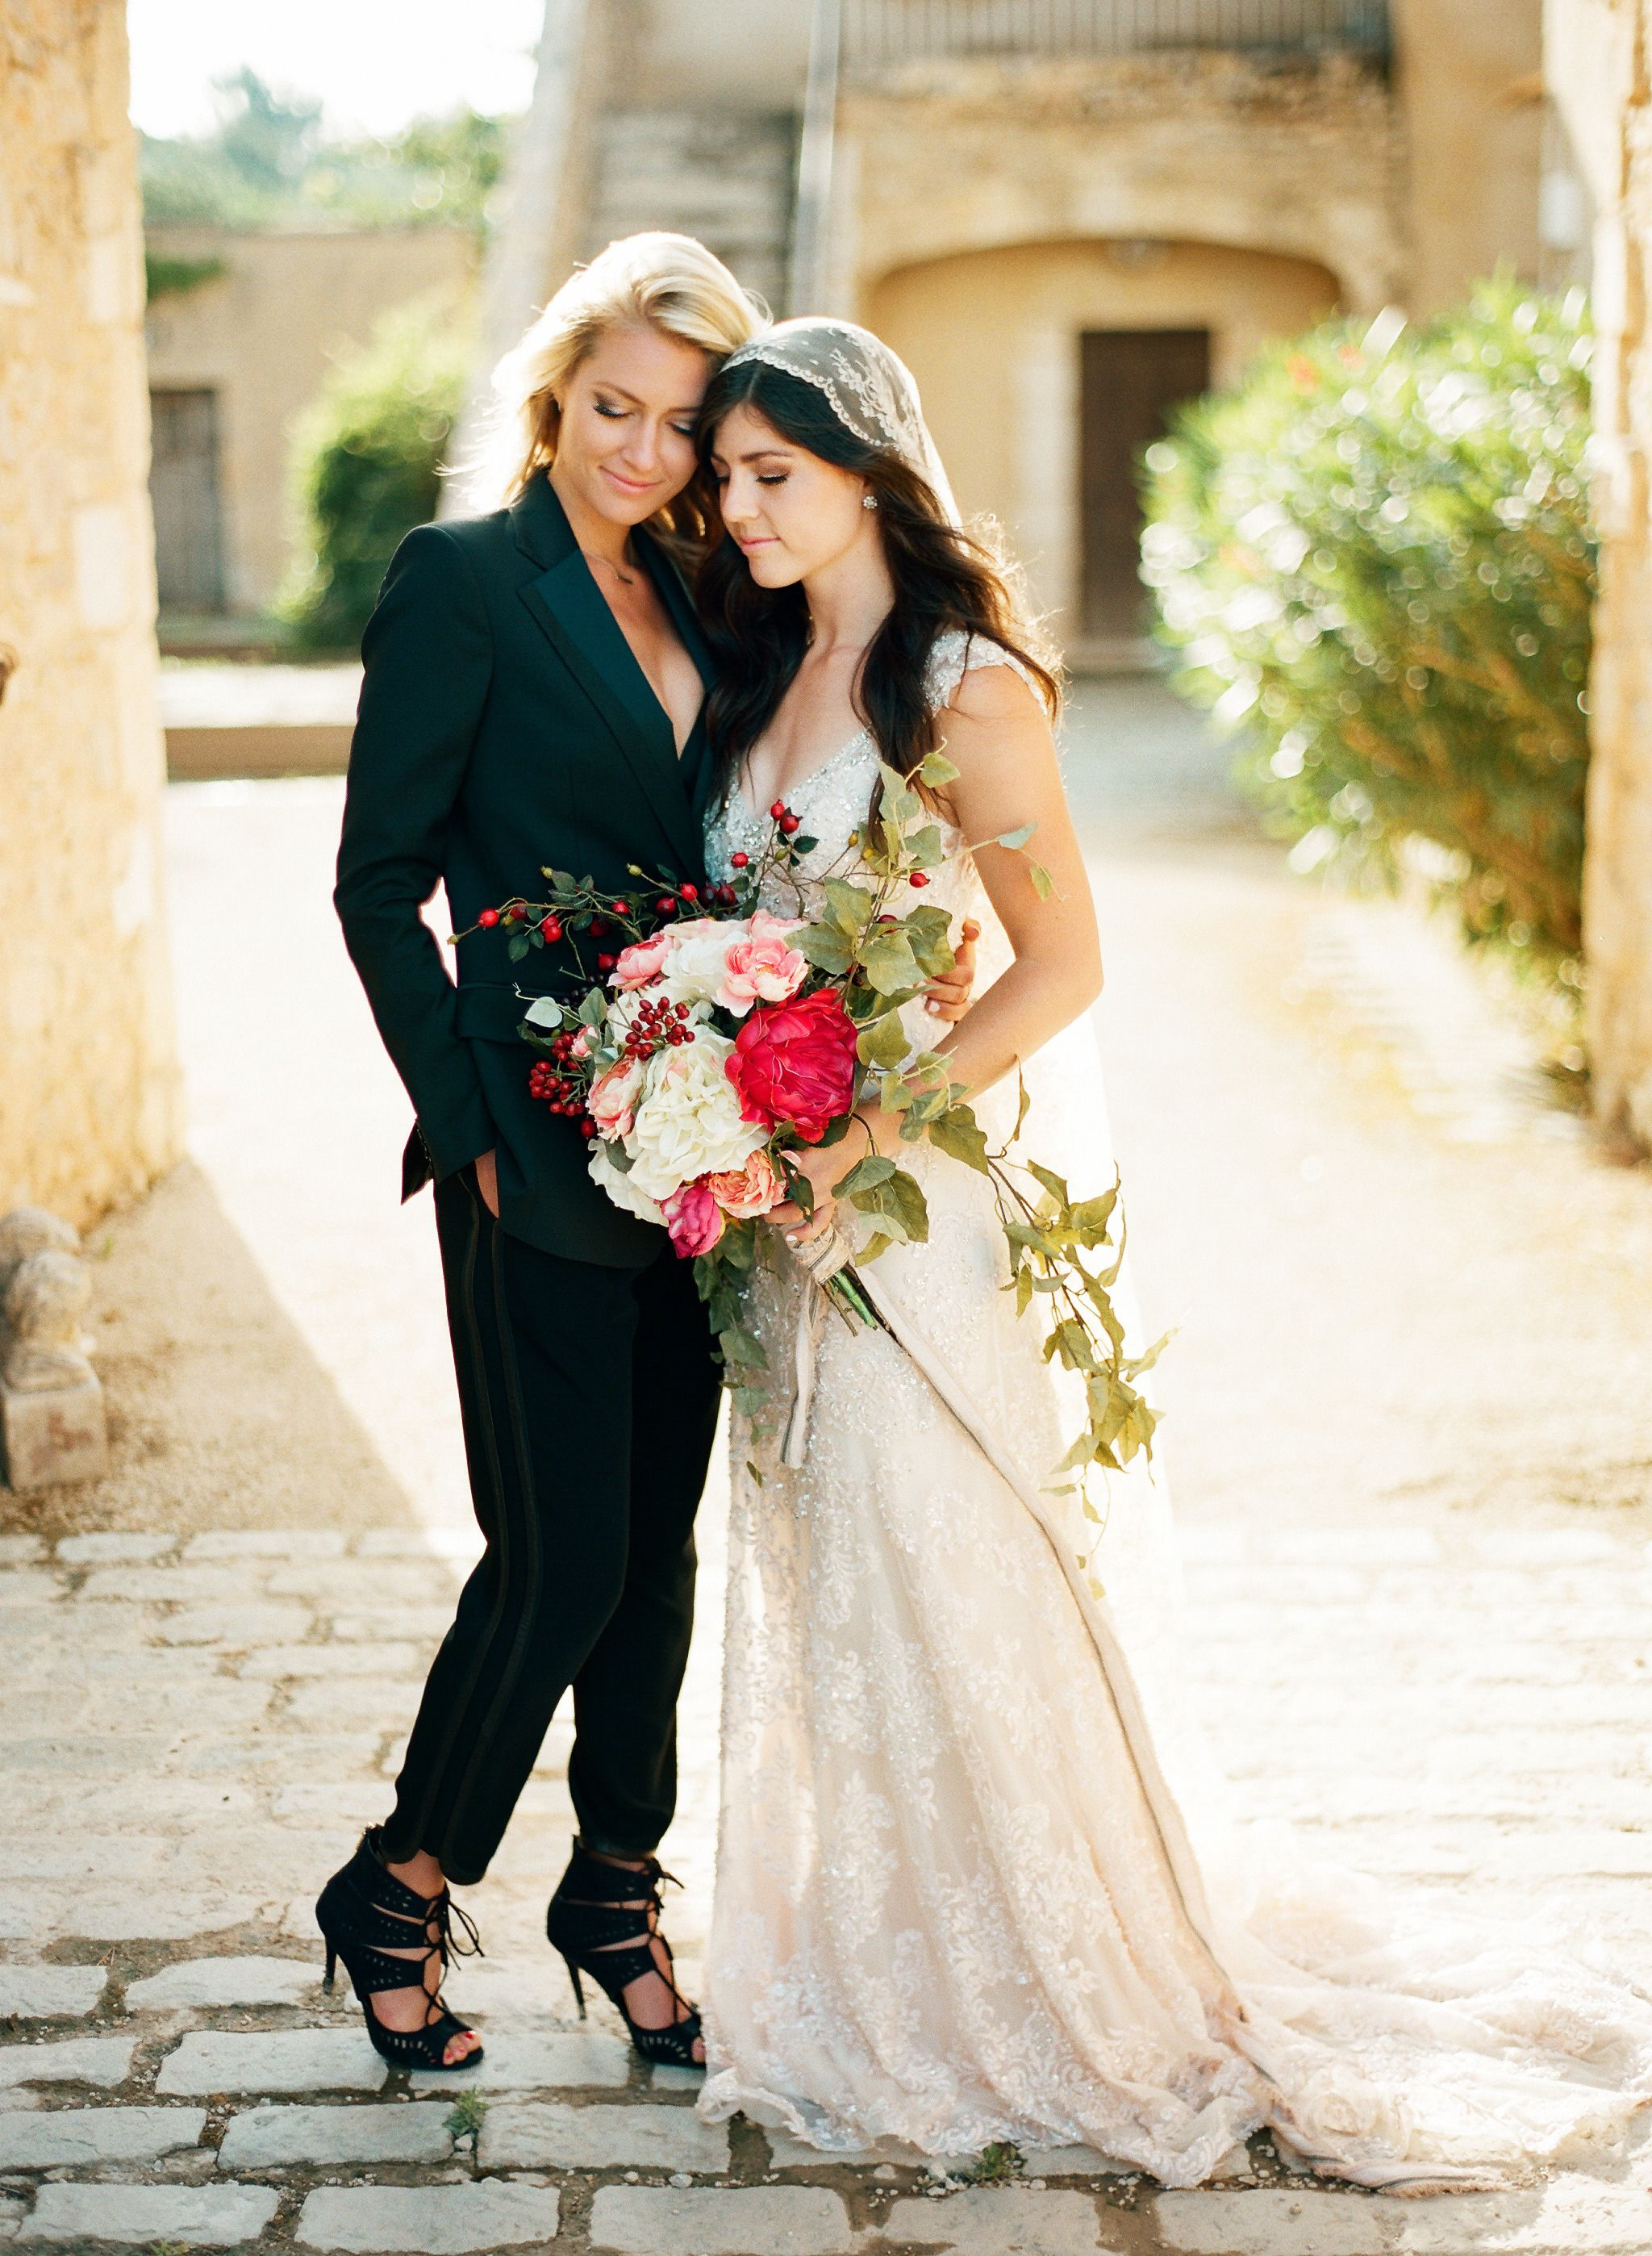 Lgbt Wedding Photography: Intimate Wedding Inspiration In The South Of France